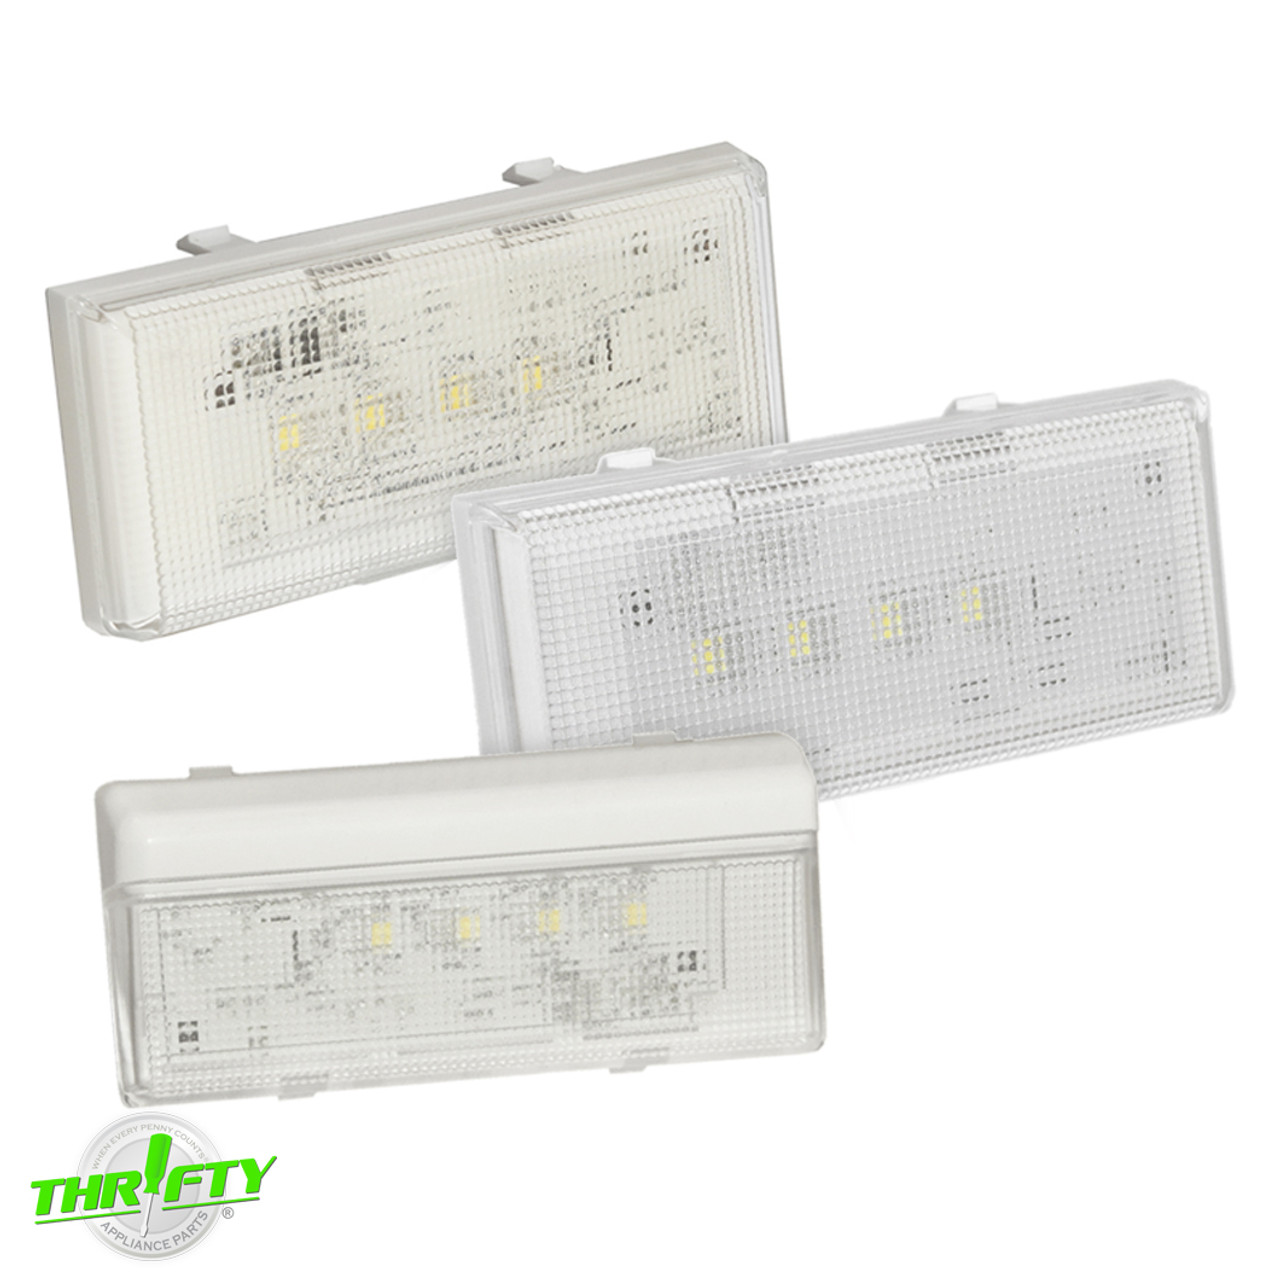 Replacement LED For Whirlpool Refrigerator WPW10515058 AP6022534 PS11755867 New